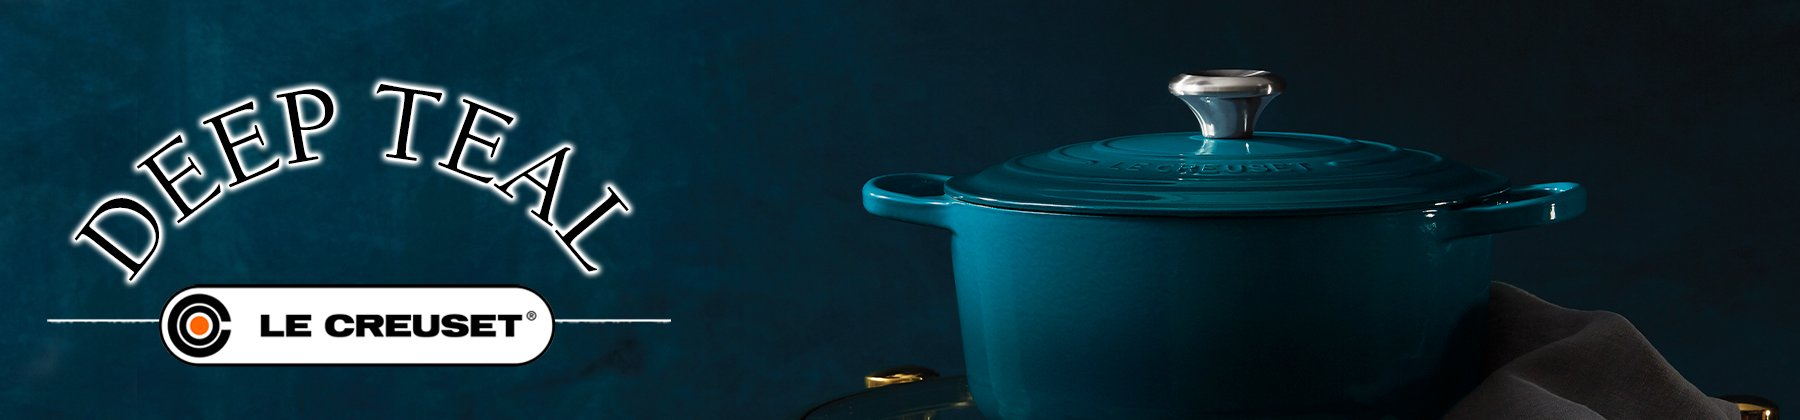 Photo of Le Creuset Deep Teal